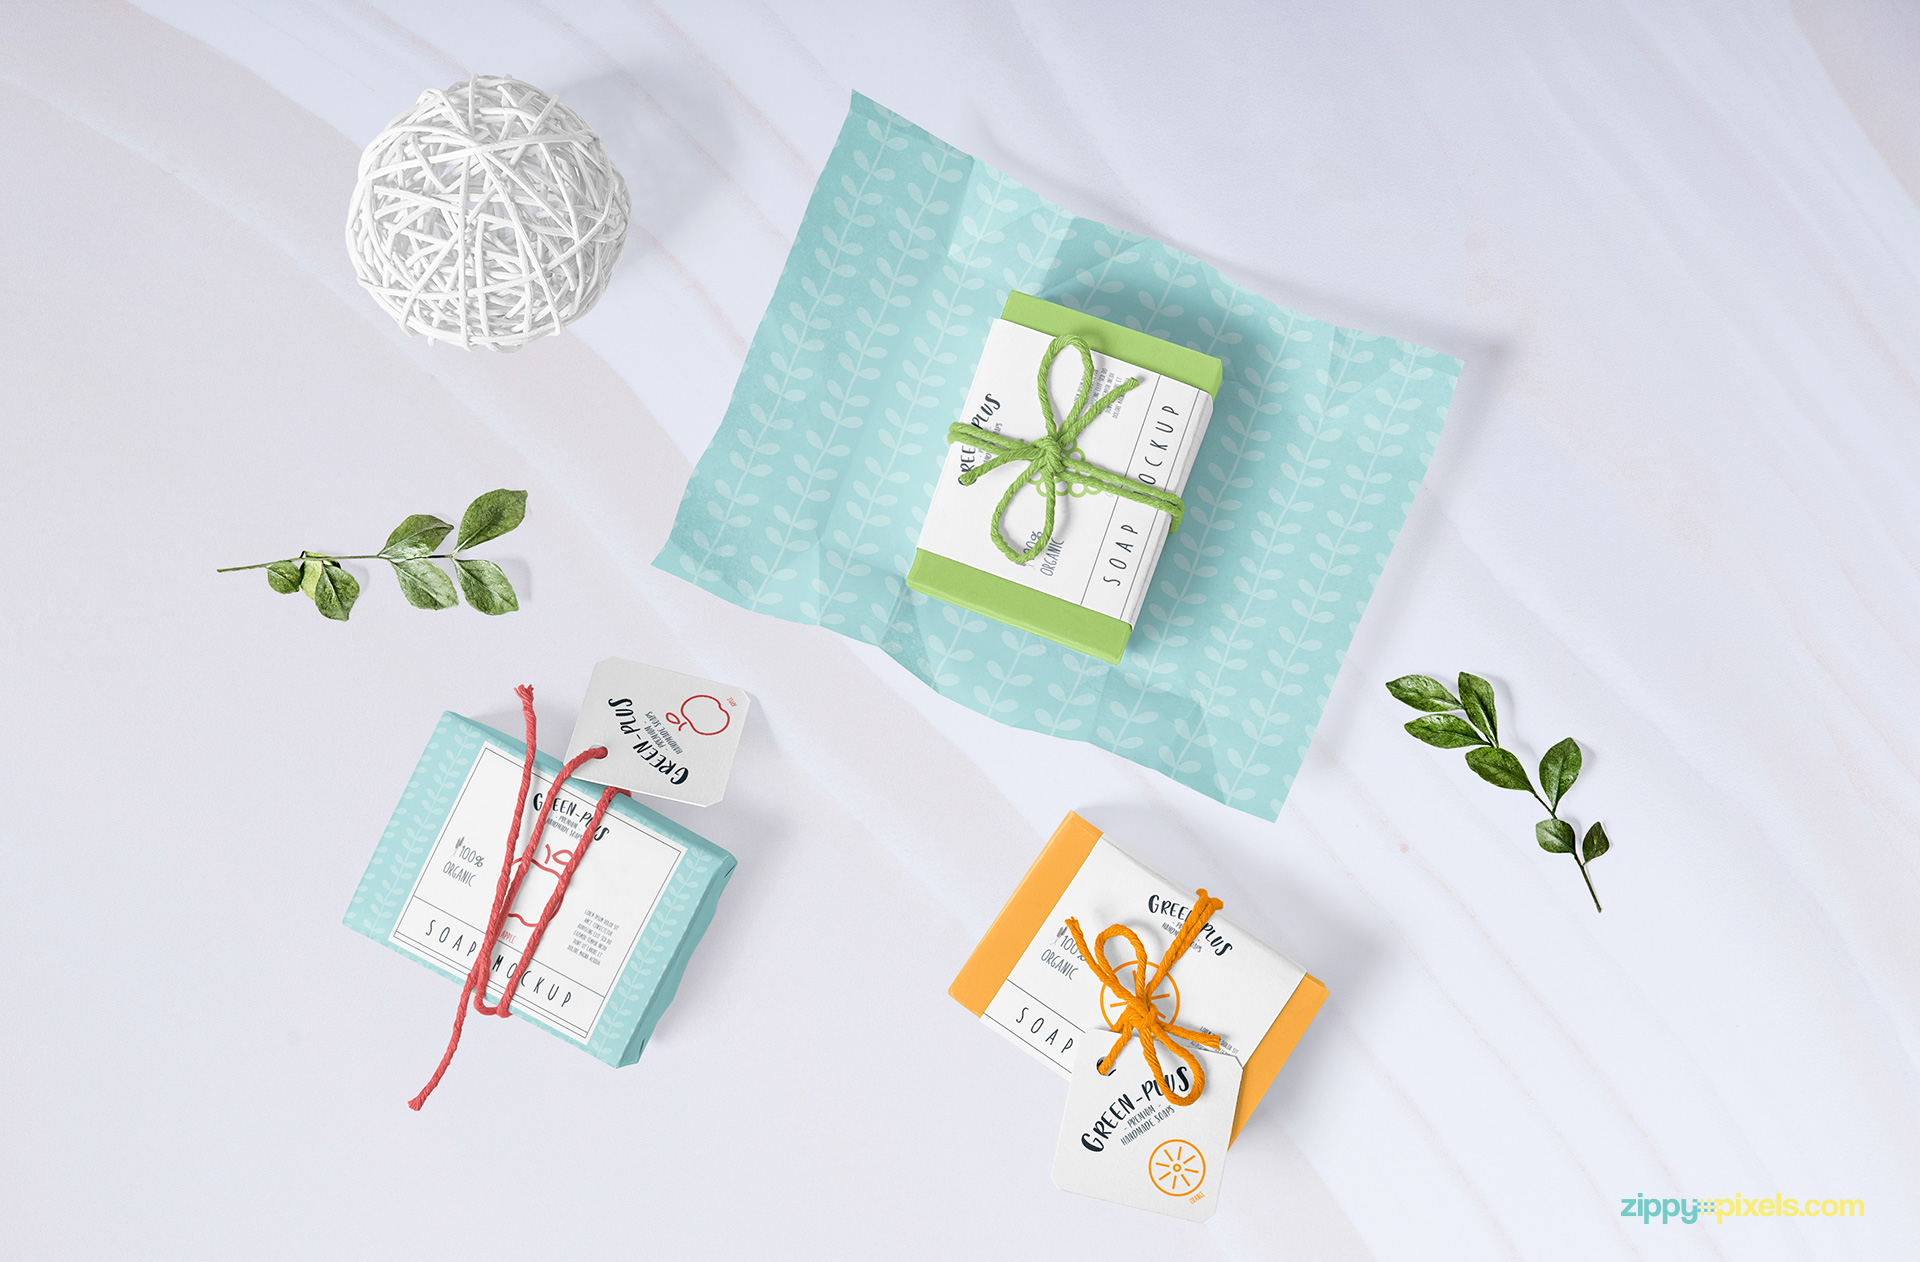 Craft soap mockup free PSD.